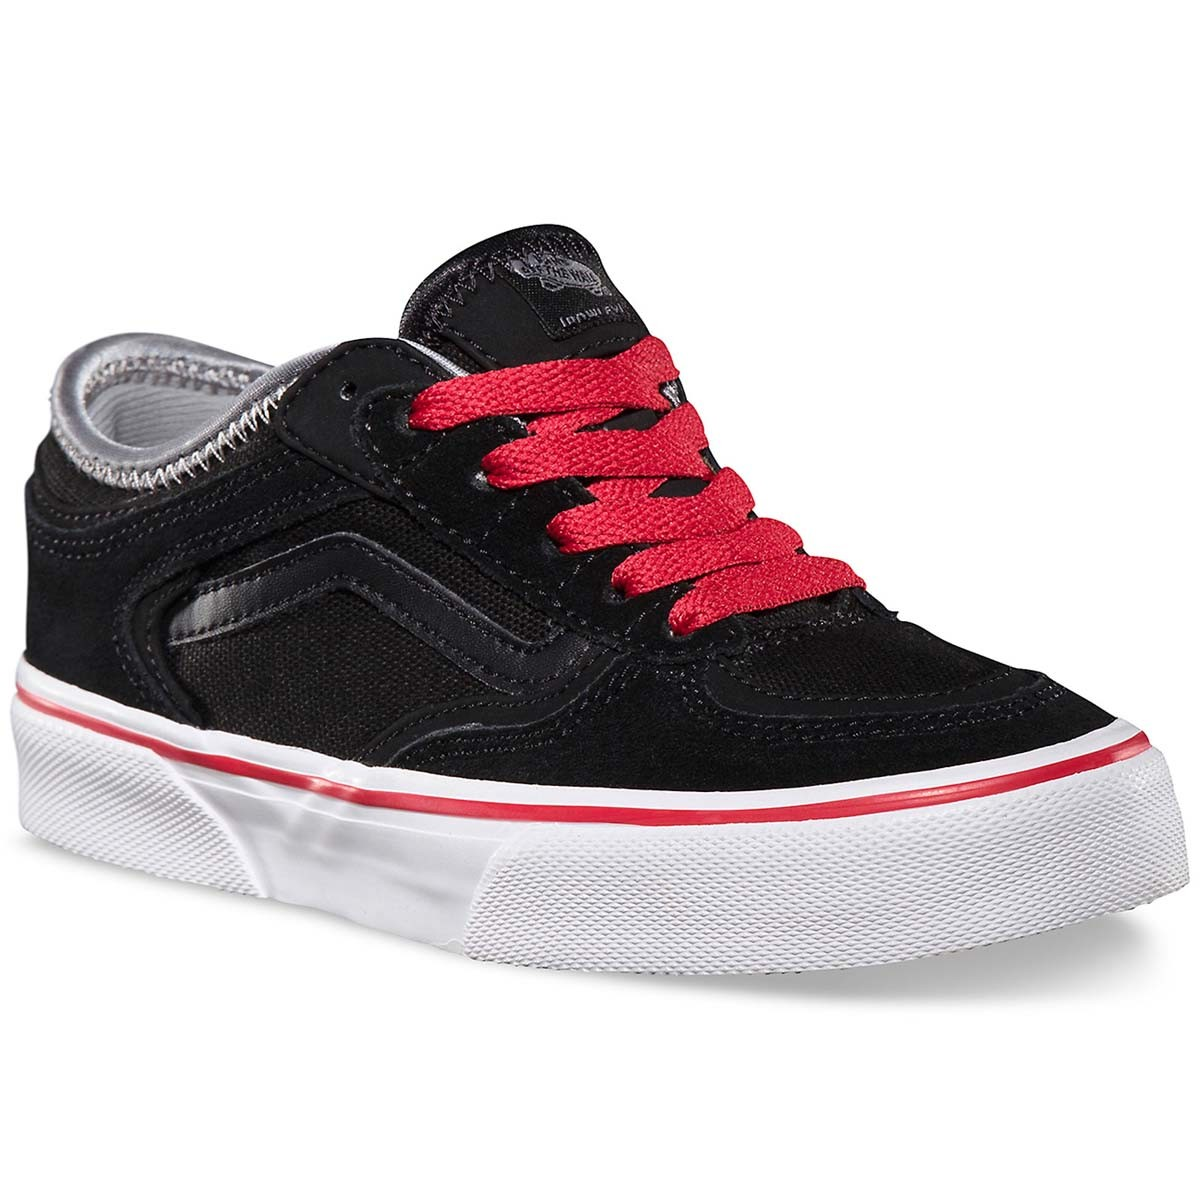 Vans Geoff Rowley Pro Youth Shoes - Black / Black / Red